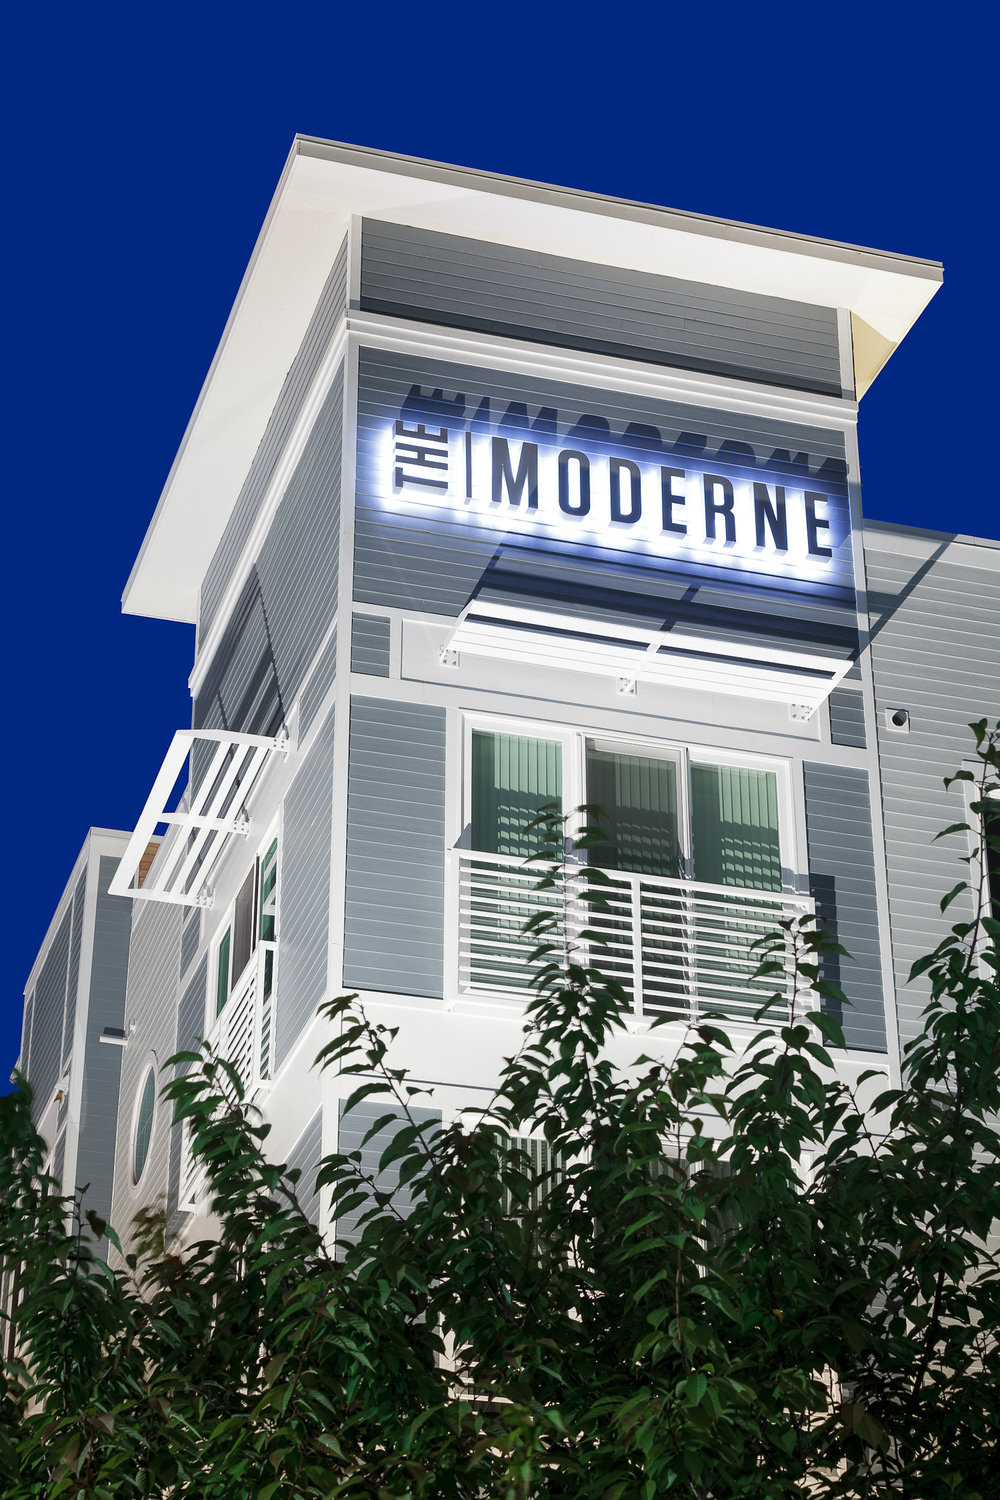 CV_CE_9_RMS-The Moderne-4547-Z.jpg